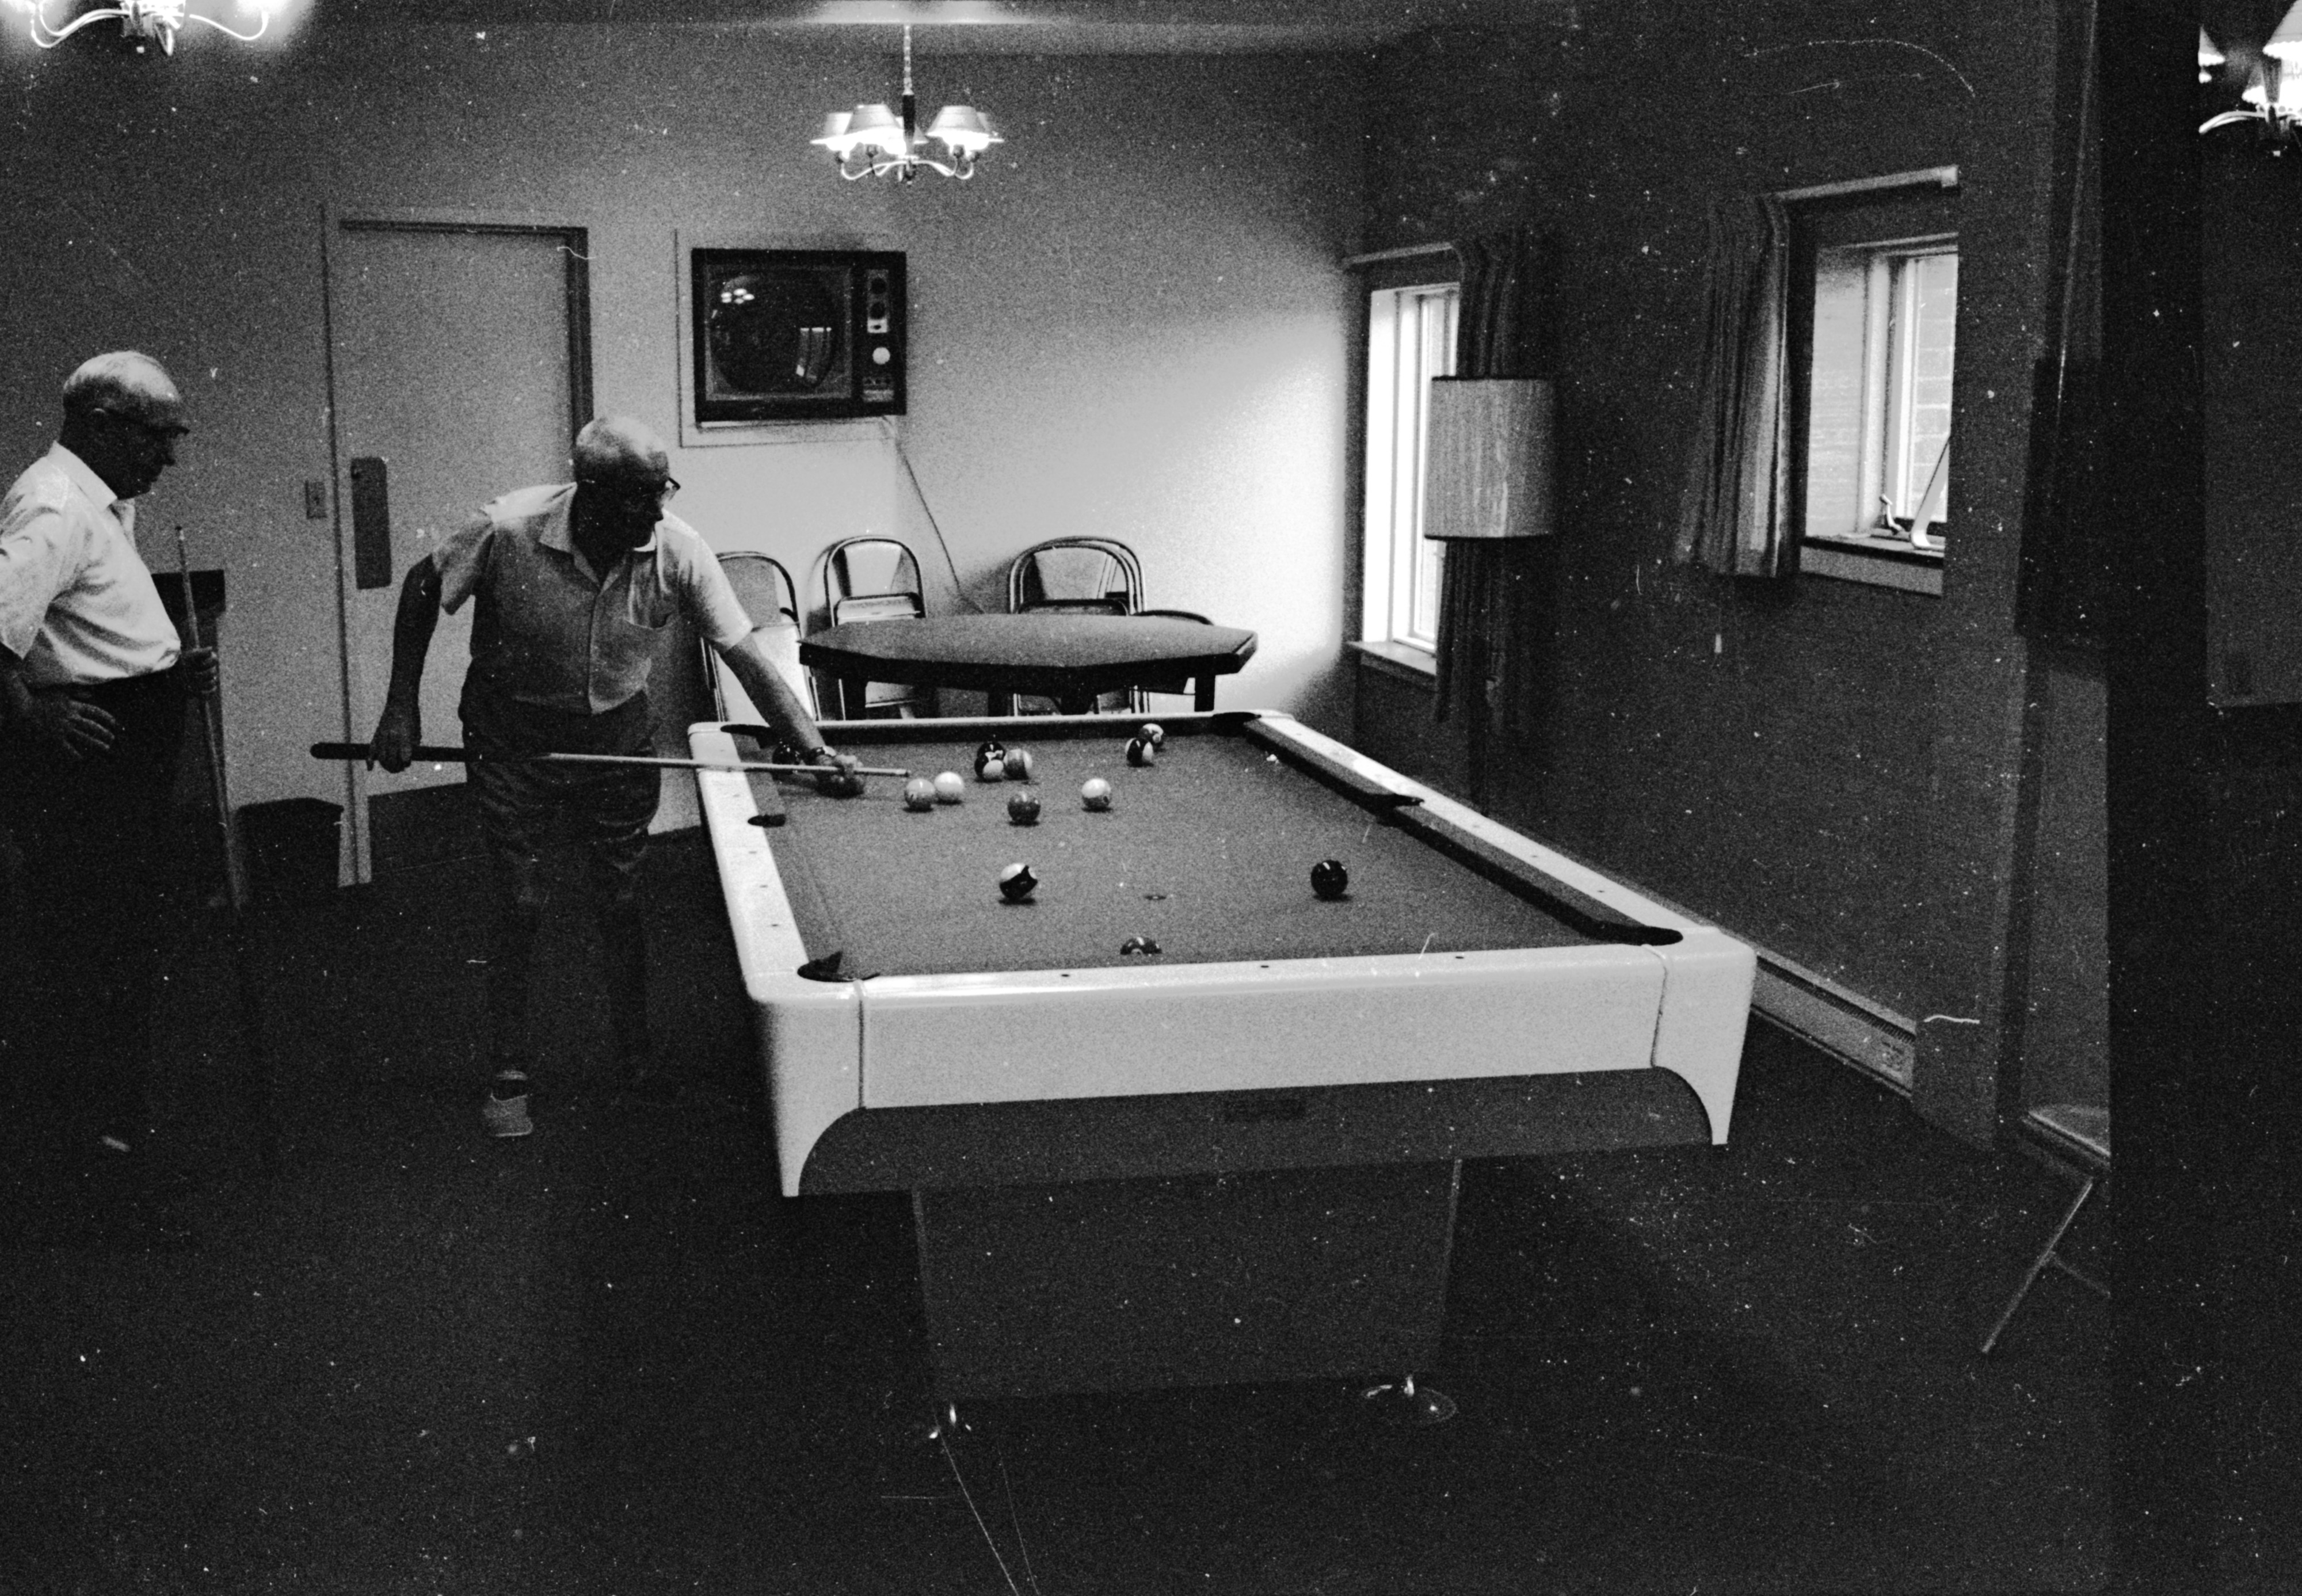 A Game Of Pool In The Men's Club At Lurie Terrace, July 1965 image